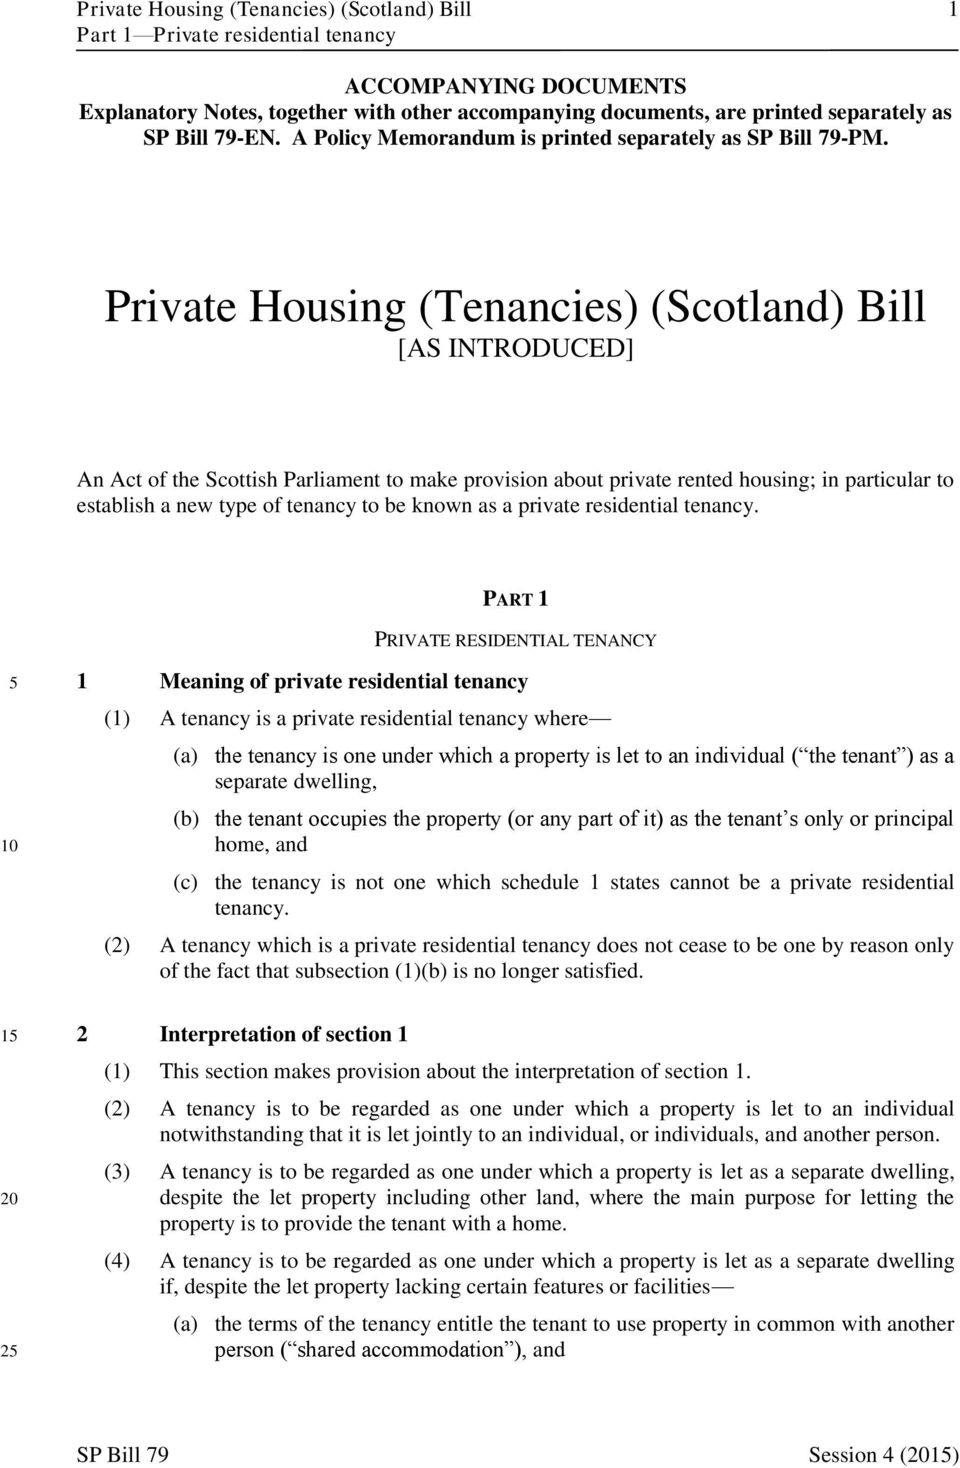 Private Housing (Tenancies) (Scotland) Bill [AS INTRODUCED] An Act of the Scottish Parliament to make provision about private rented housing; in particular to establish a new type of tenancy to be